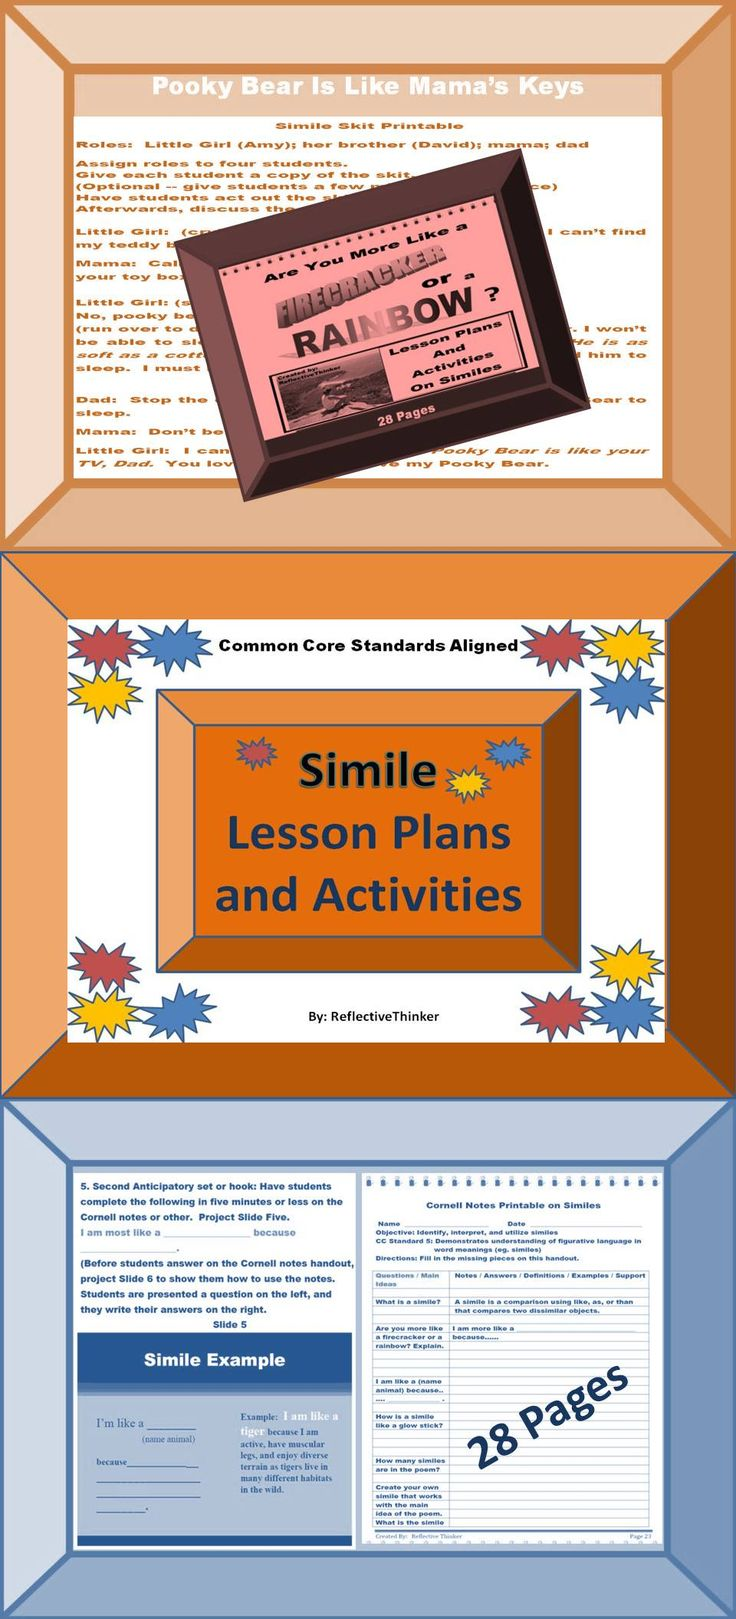 These in-depth, well-organized lesson plans (28 pages) on similes include Common Core Standards, lesson objectives, 21 slides for PowerPoint or Smartboard, two anticipatory hooks, a simile skit, a simile song, a simile poem, a simile mad lib, guided practice, independent practice, concrete examples, choices for students, differentiated learning ideas, cooperative learning ideas, how to incorporate Cornell note-taking graphic organizer, a bulletin board idea, and four printables.